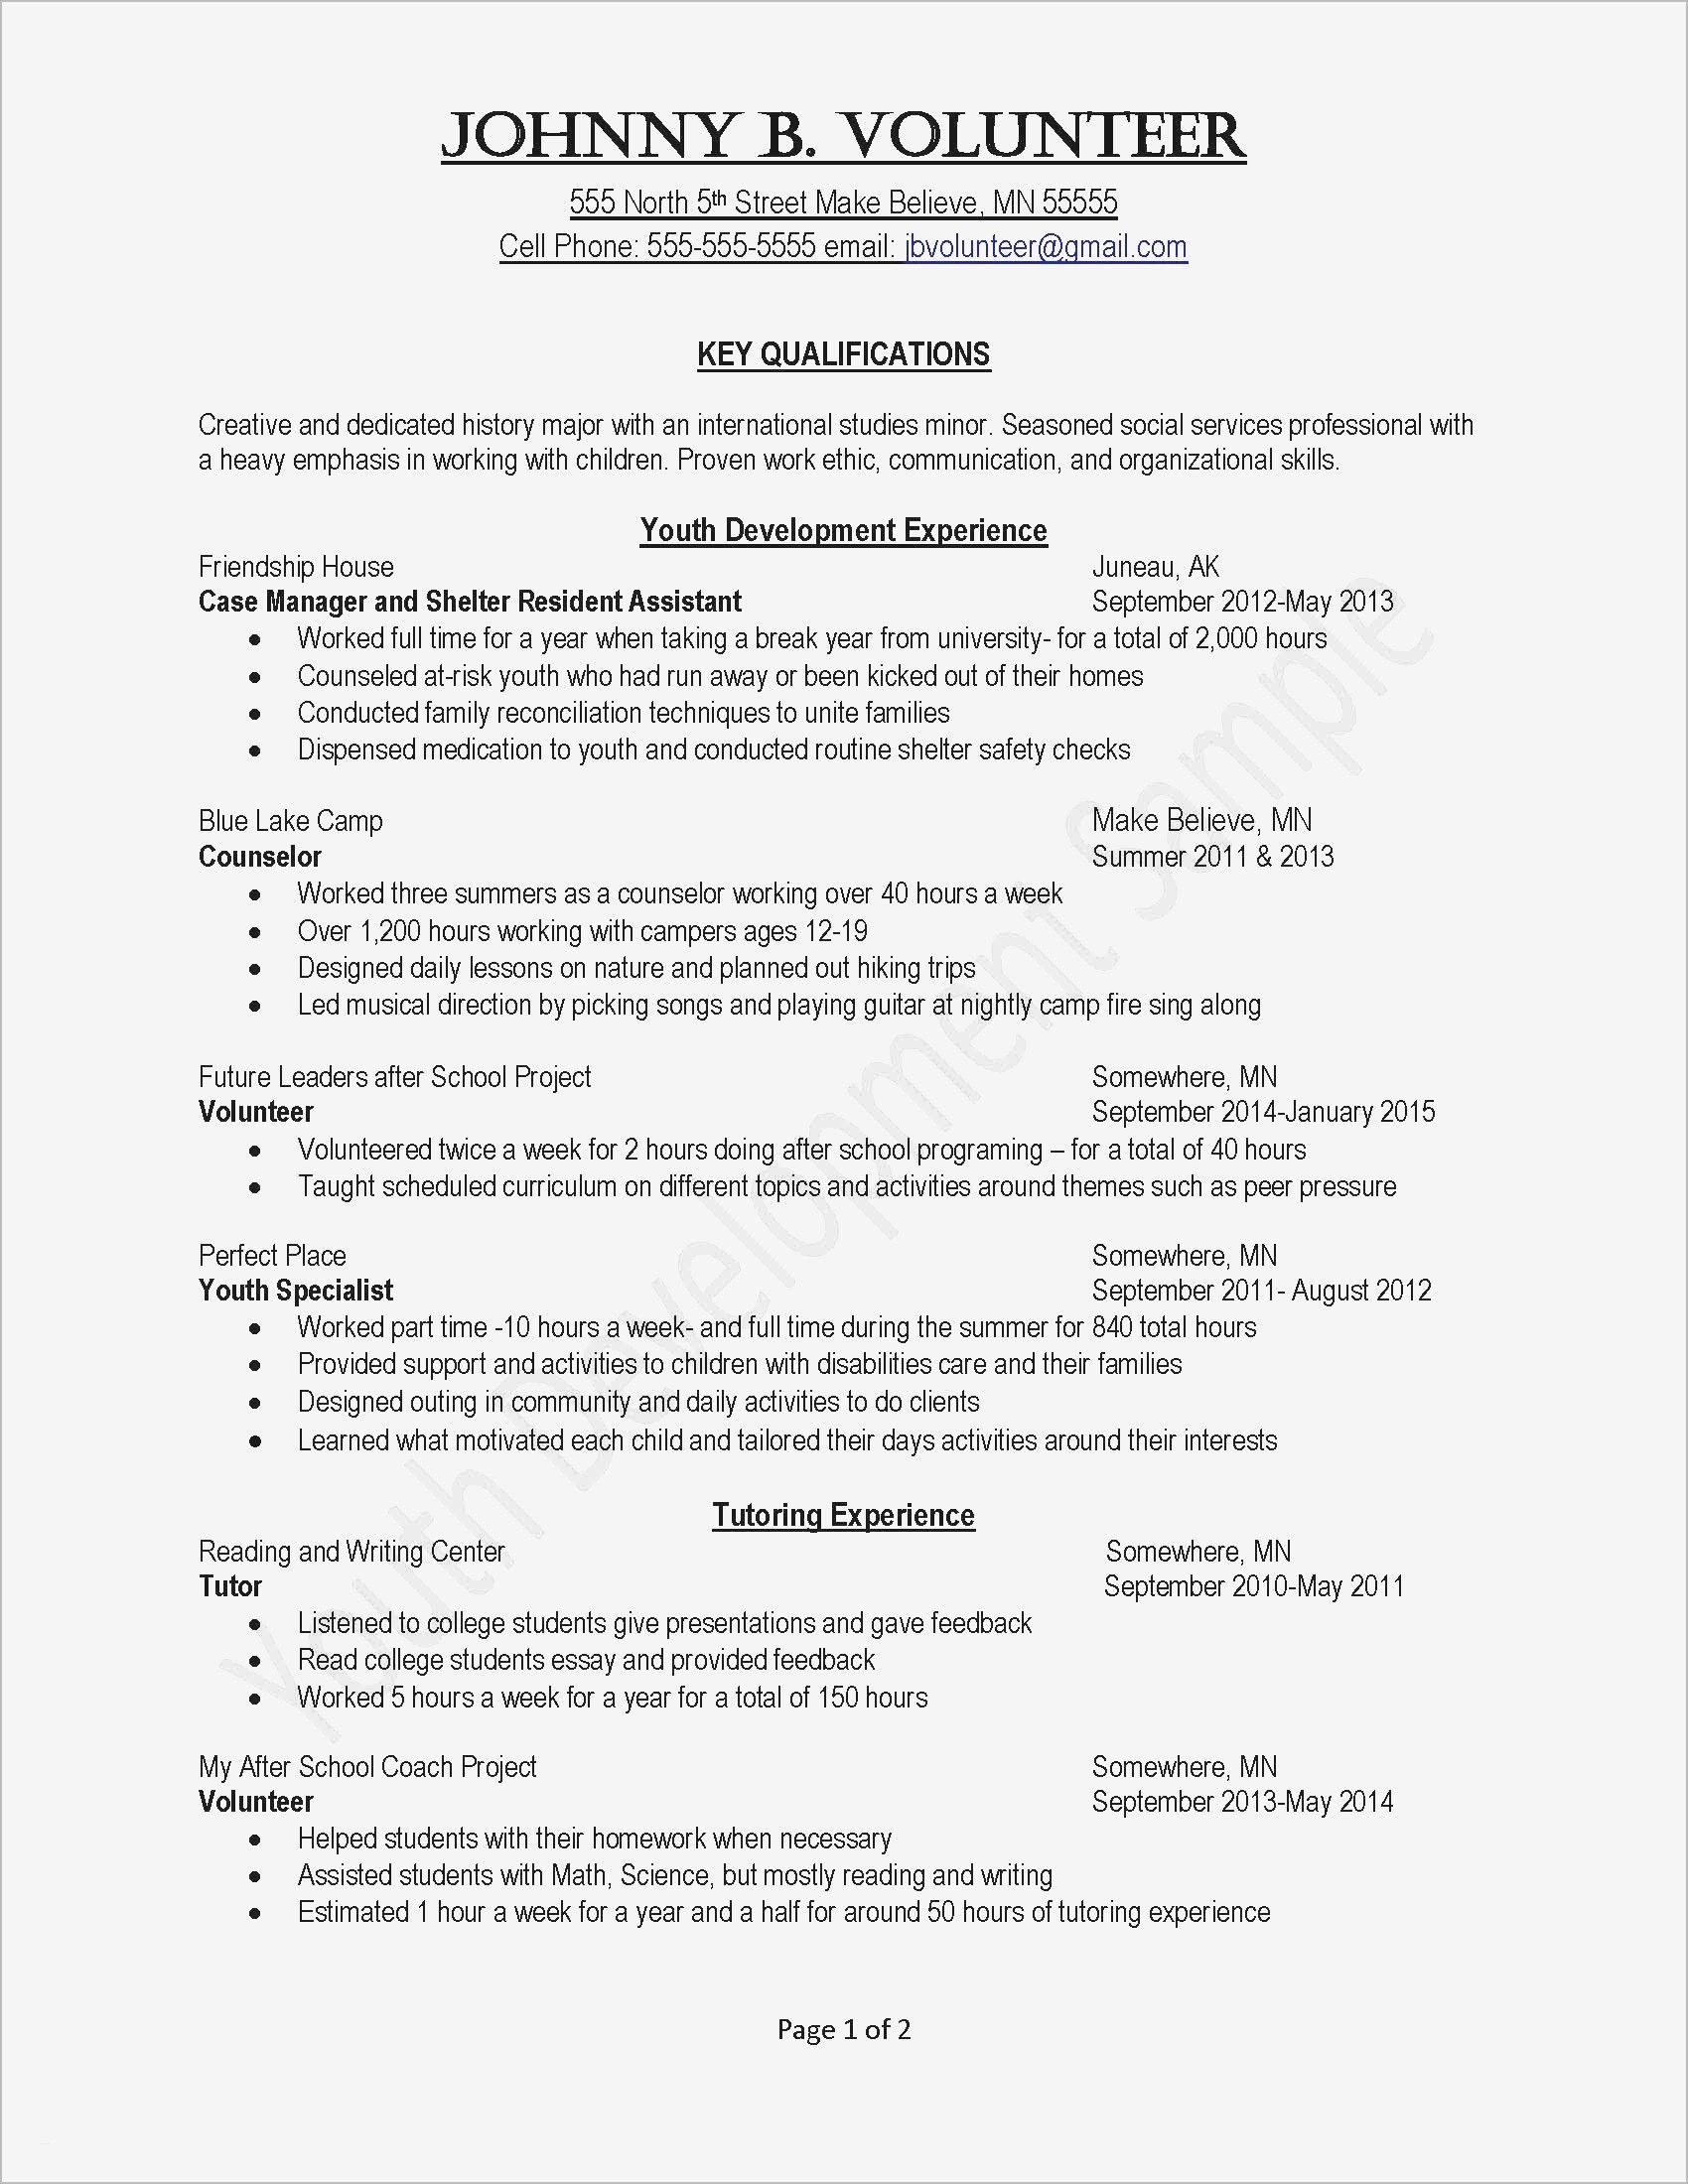 Cover Letter Template Fill In - Resume Template Free Fill In New Job Fer Letter Template Us Copy Od